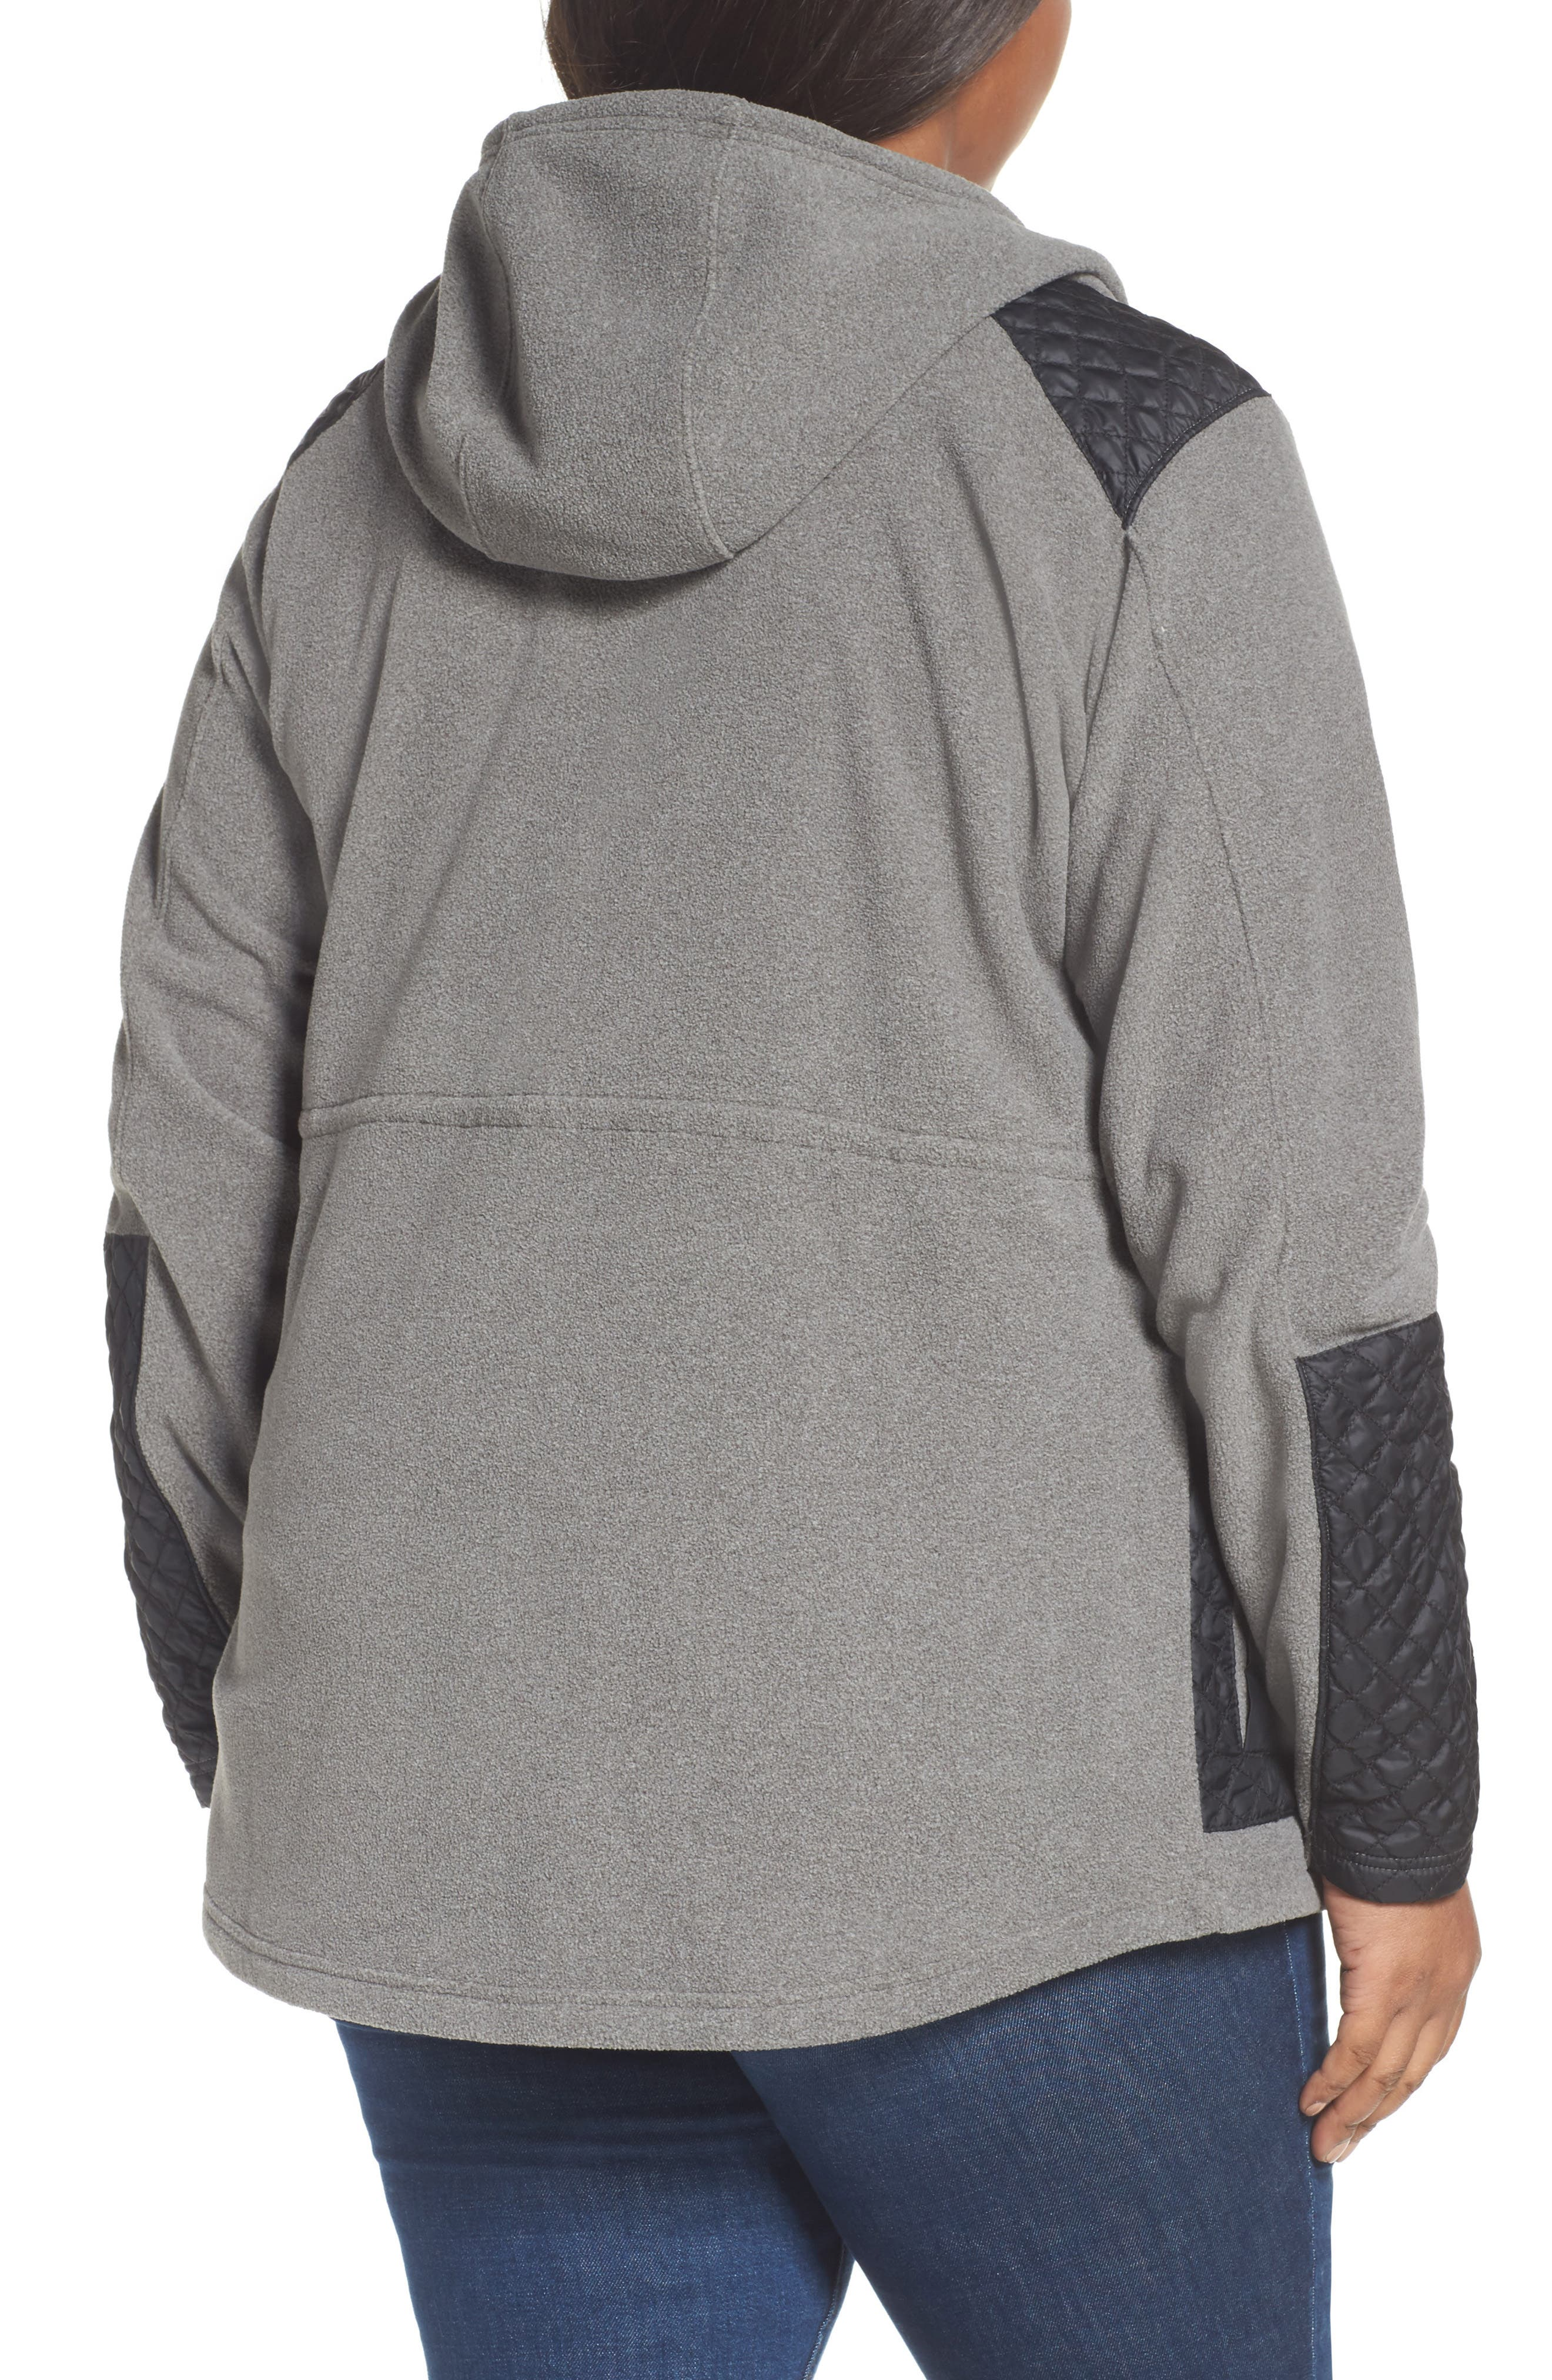 Warm Up Hooded Fleece Jacket,                             Alternate thumbnail 2, color,                             Charcoal Heather